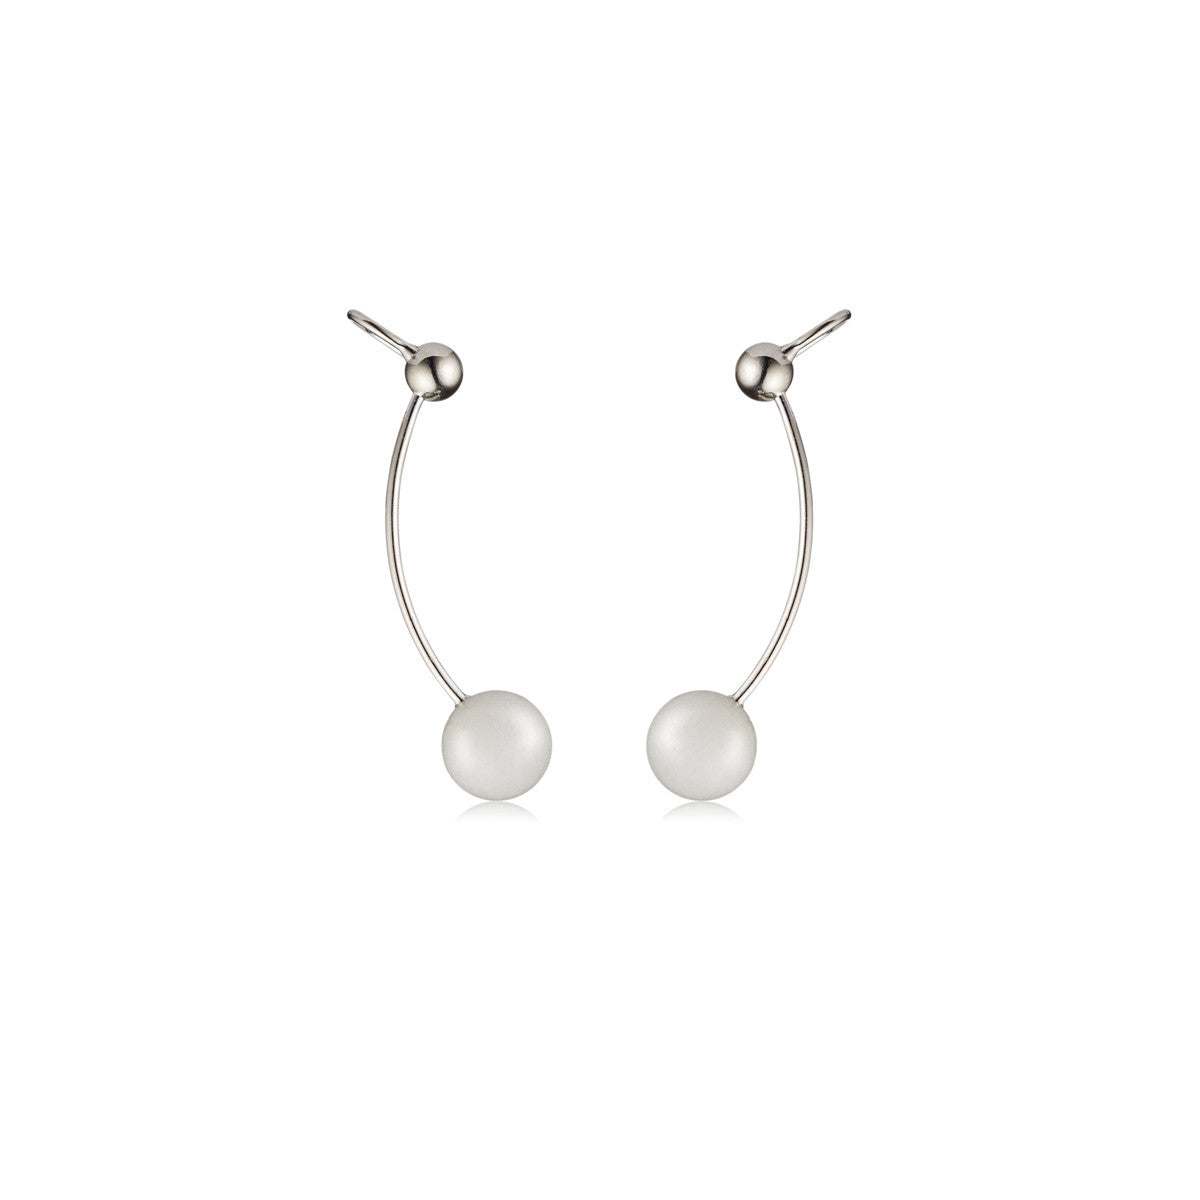 Solid brass, rhodium plated Stella Crinita ear cuffs are set in hand cut natural white agate – front